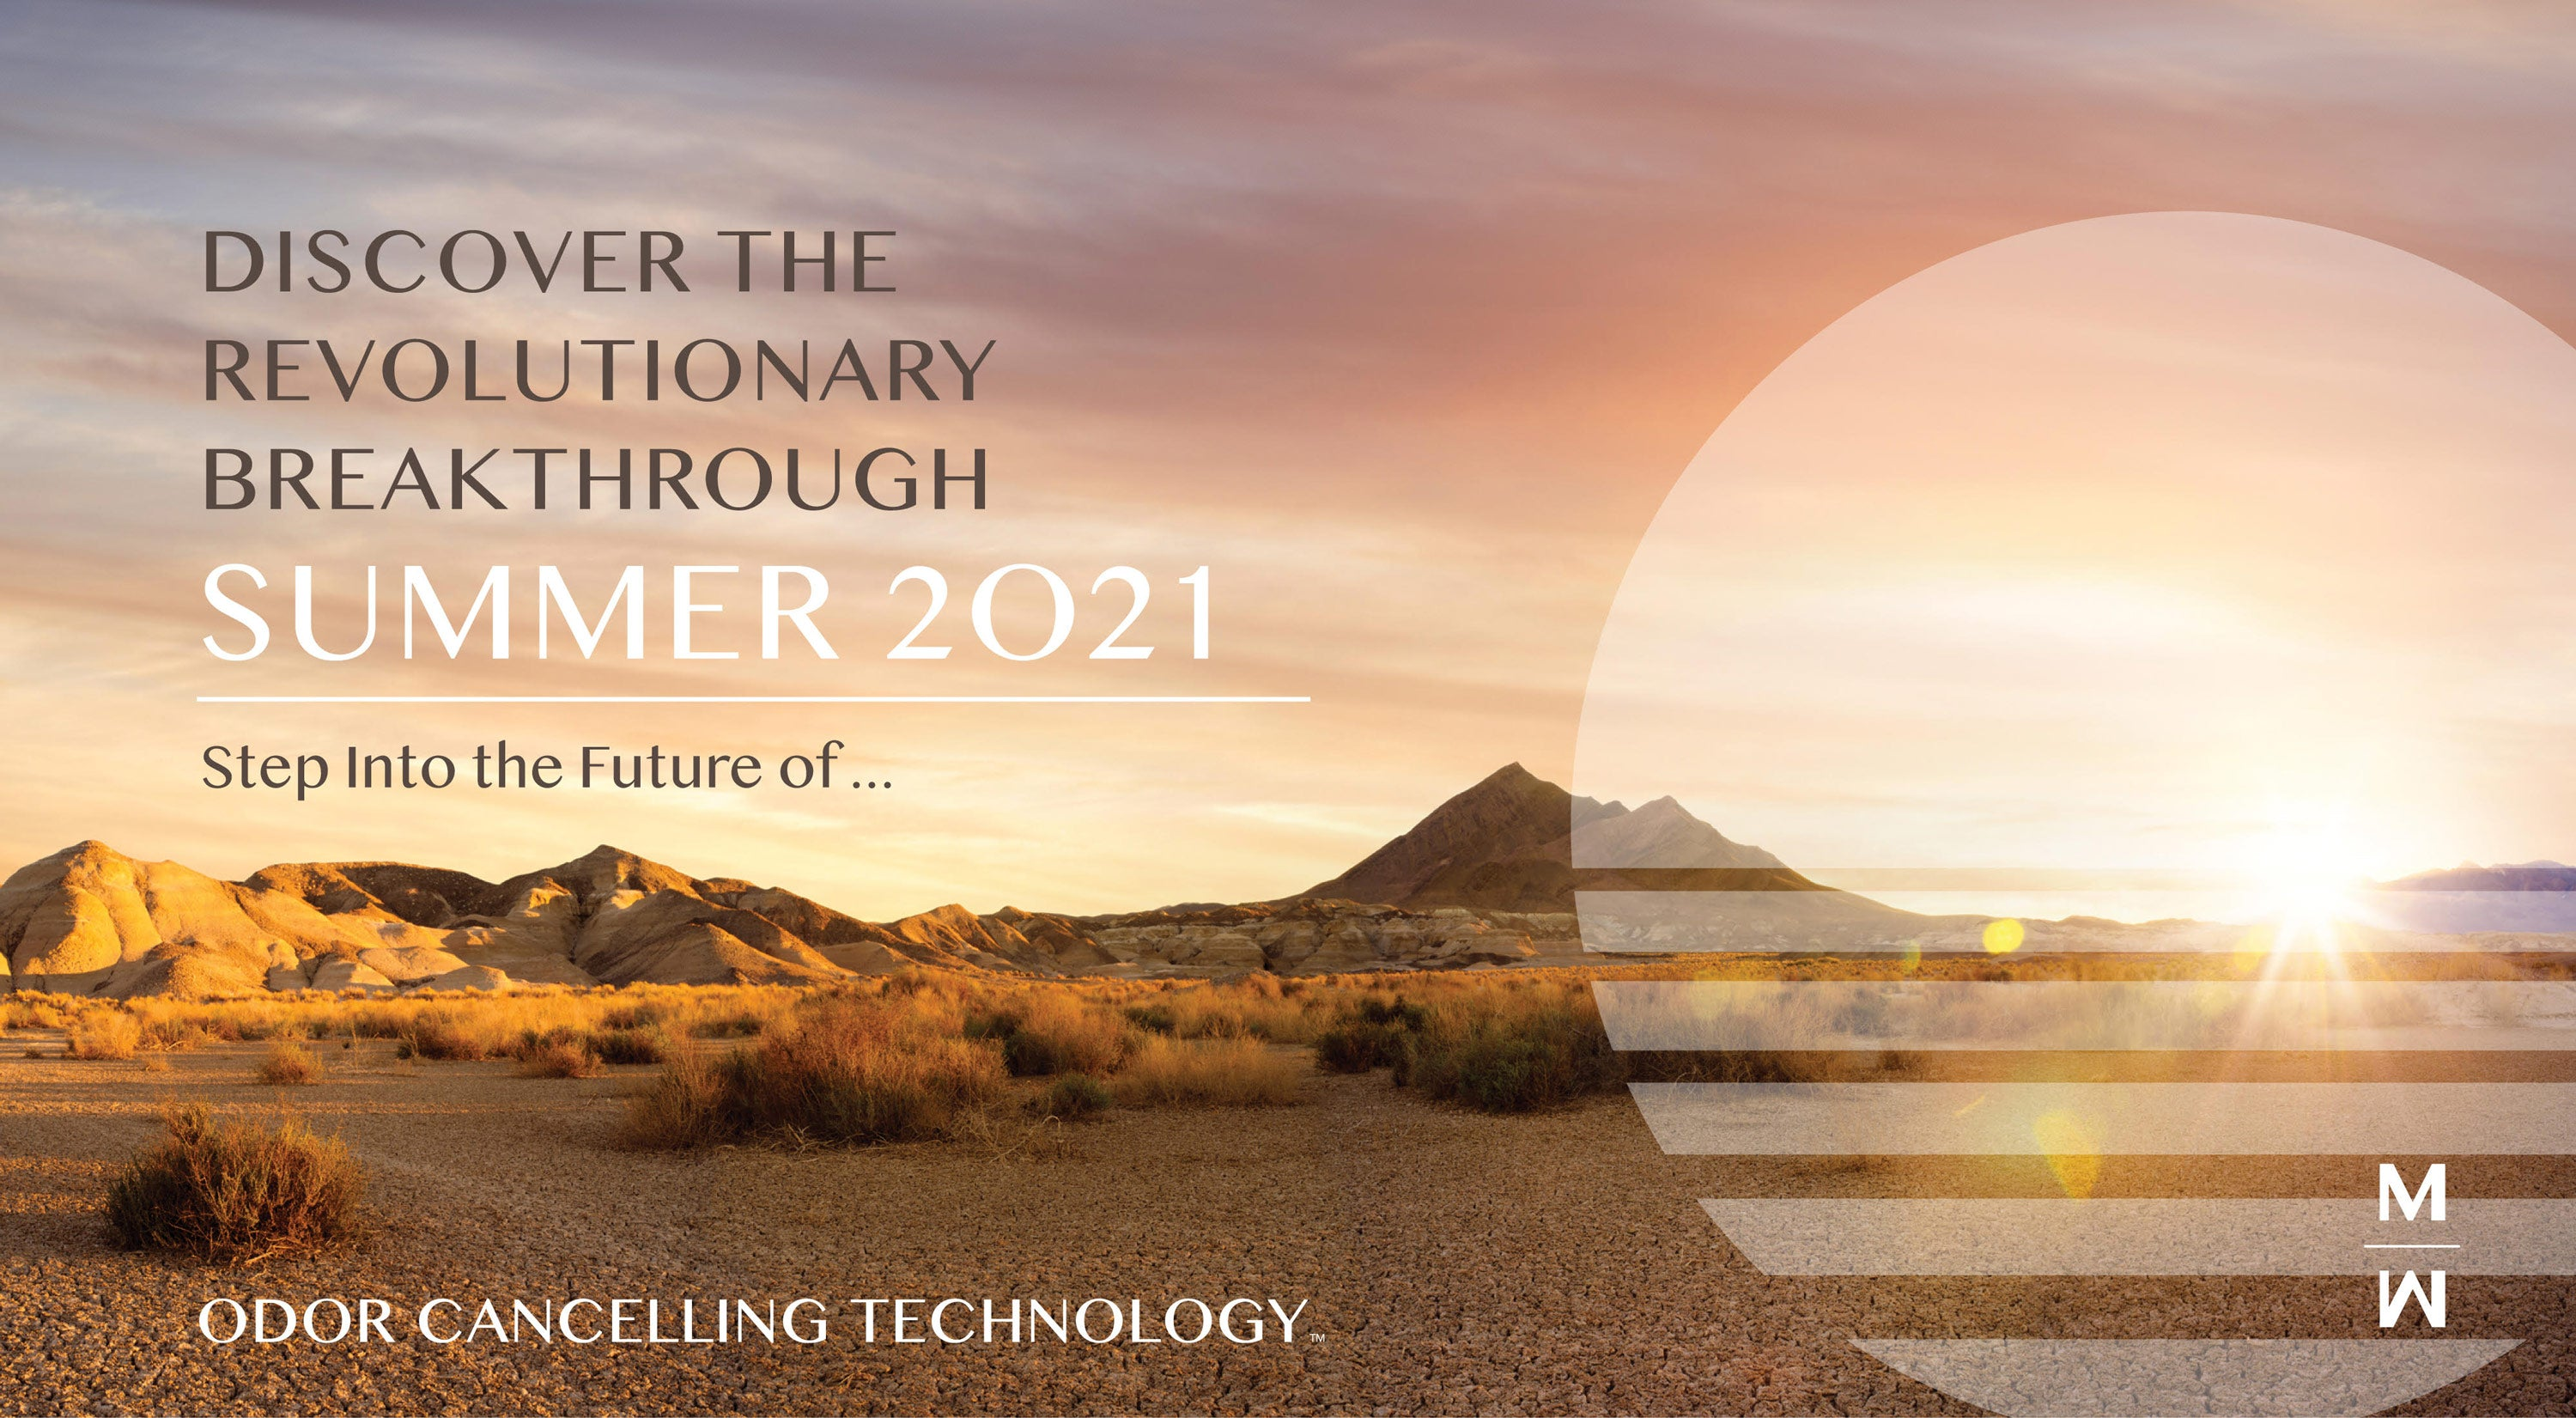 =Discover the Revolutionary Breakthrough Summer 2021. Step Into the Future of... Odor Cancelling Technology.